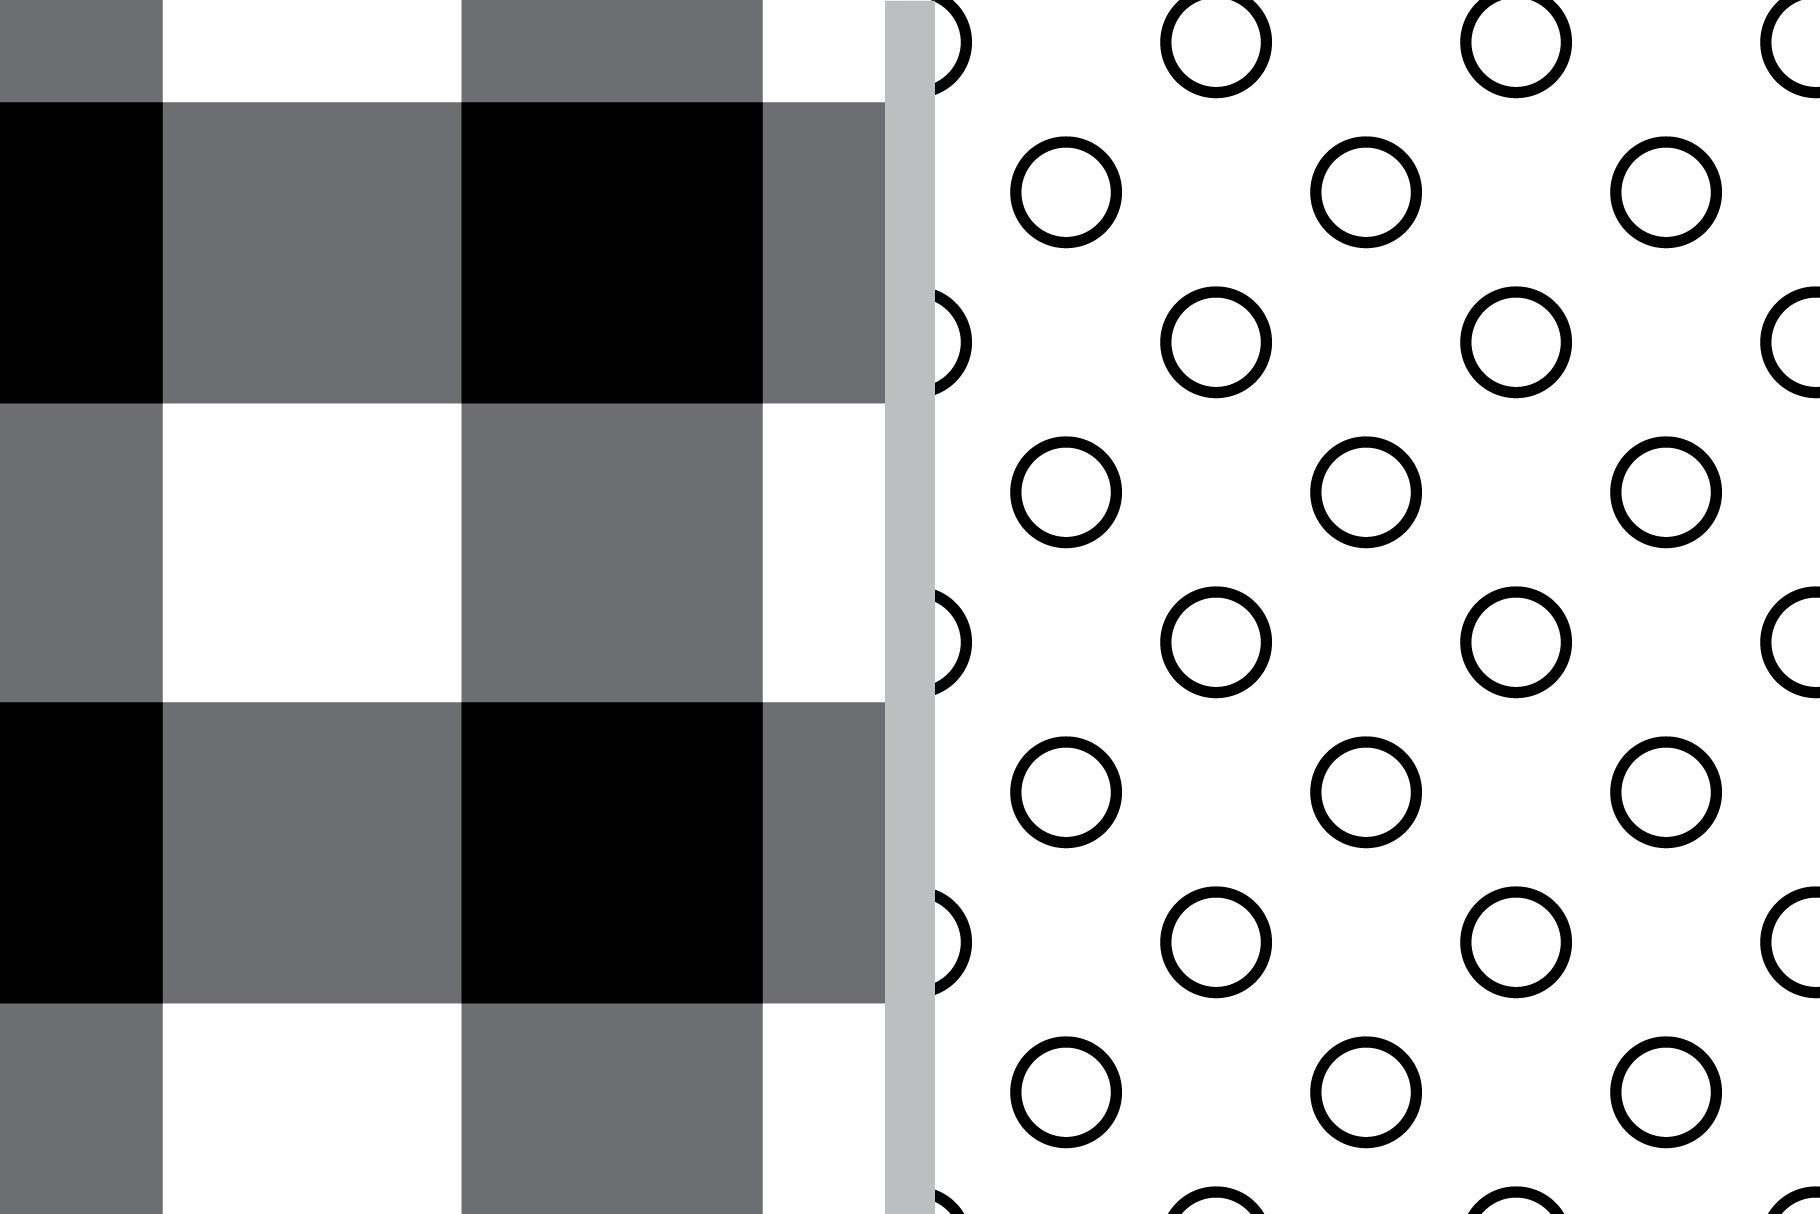 Black and White Seamless Patterns example image 5